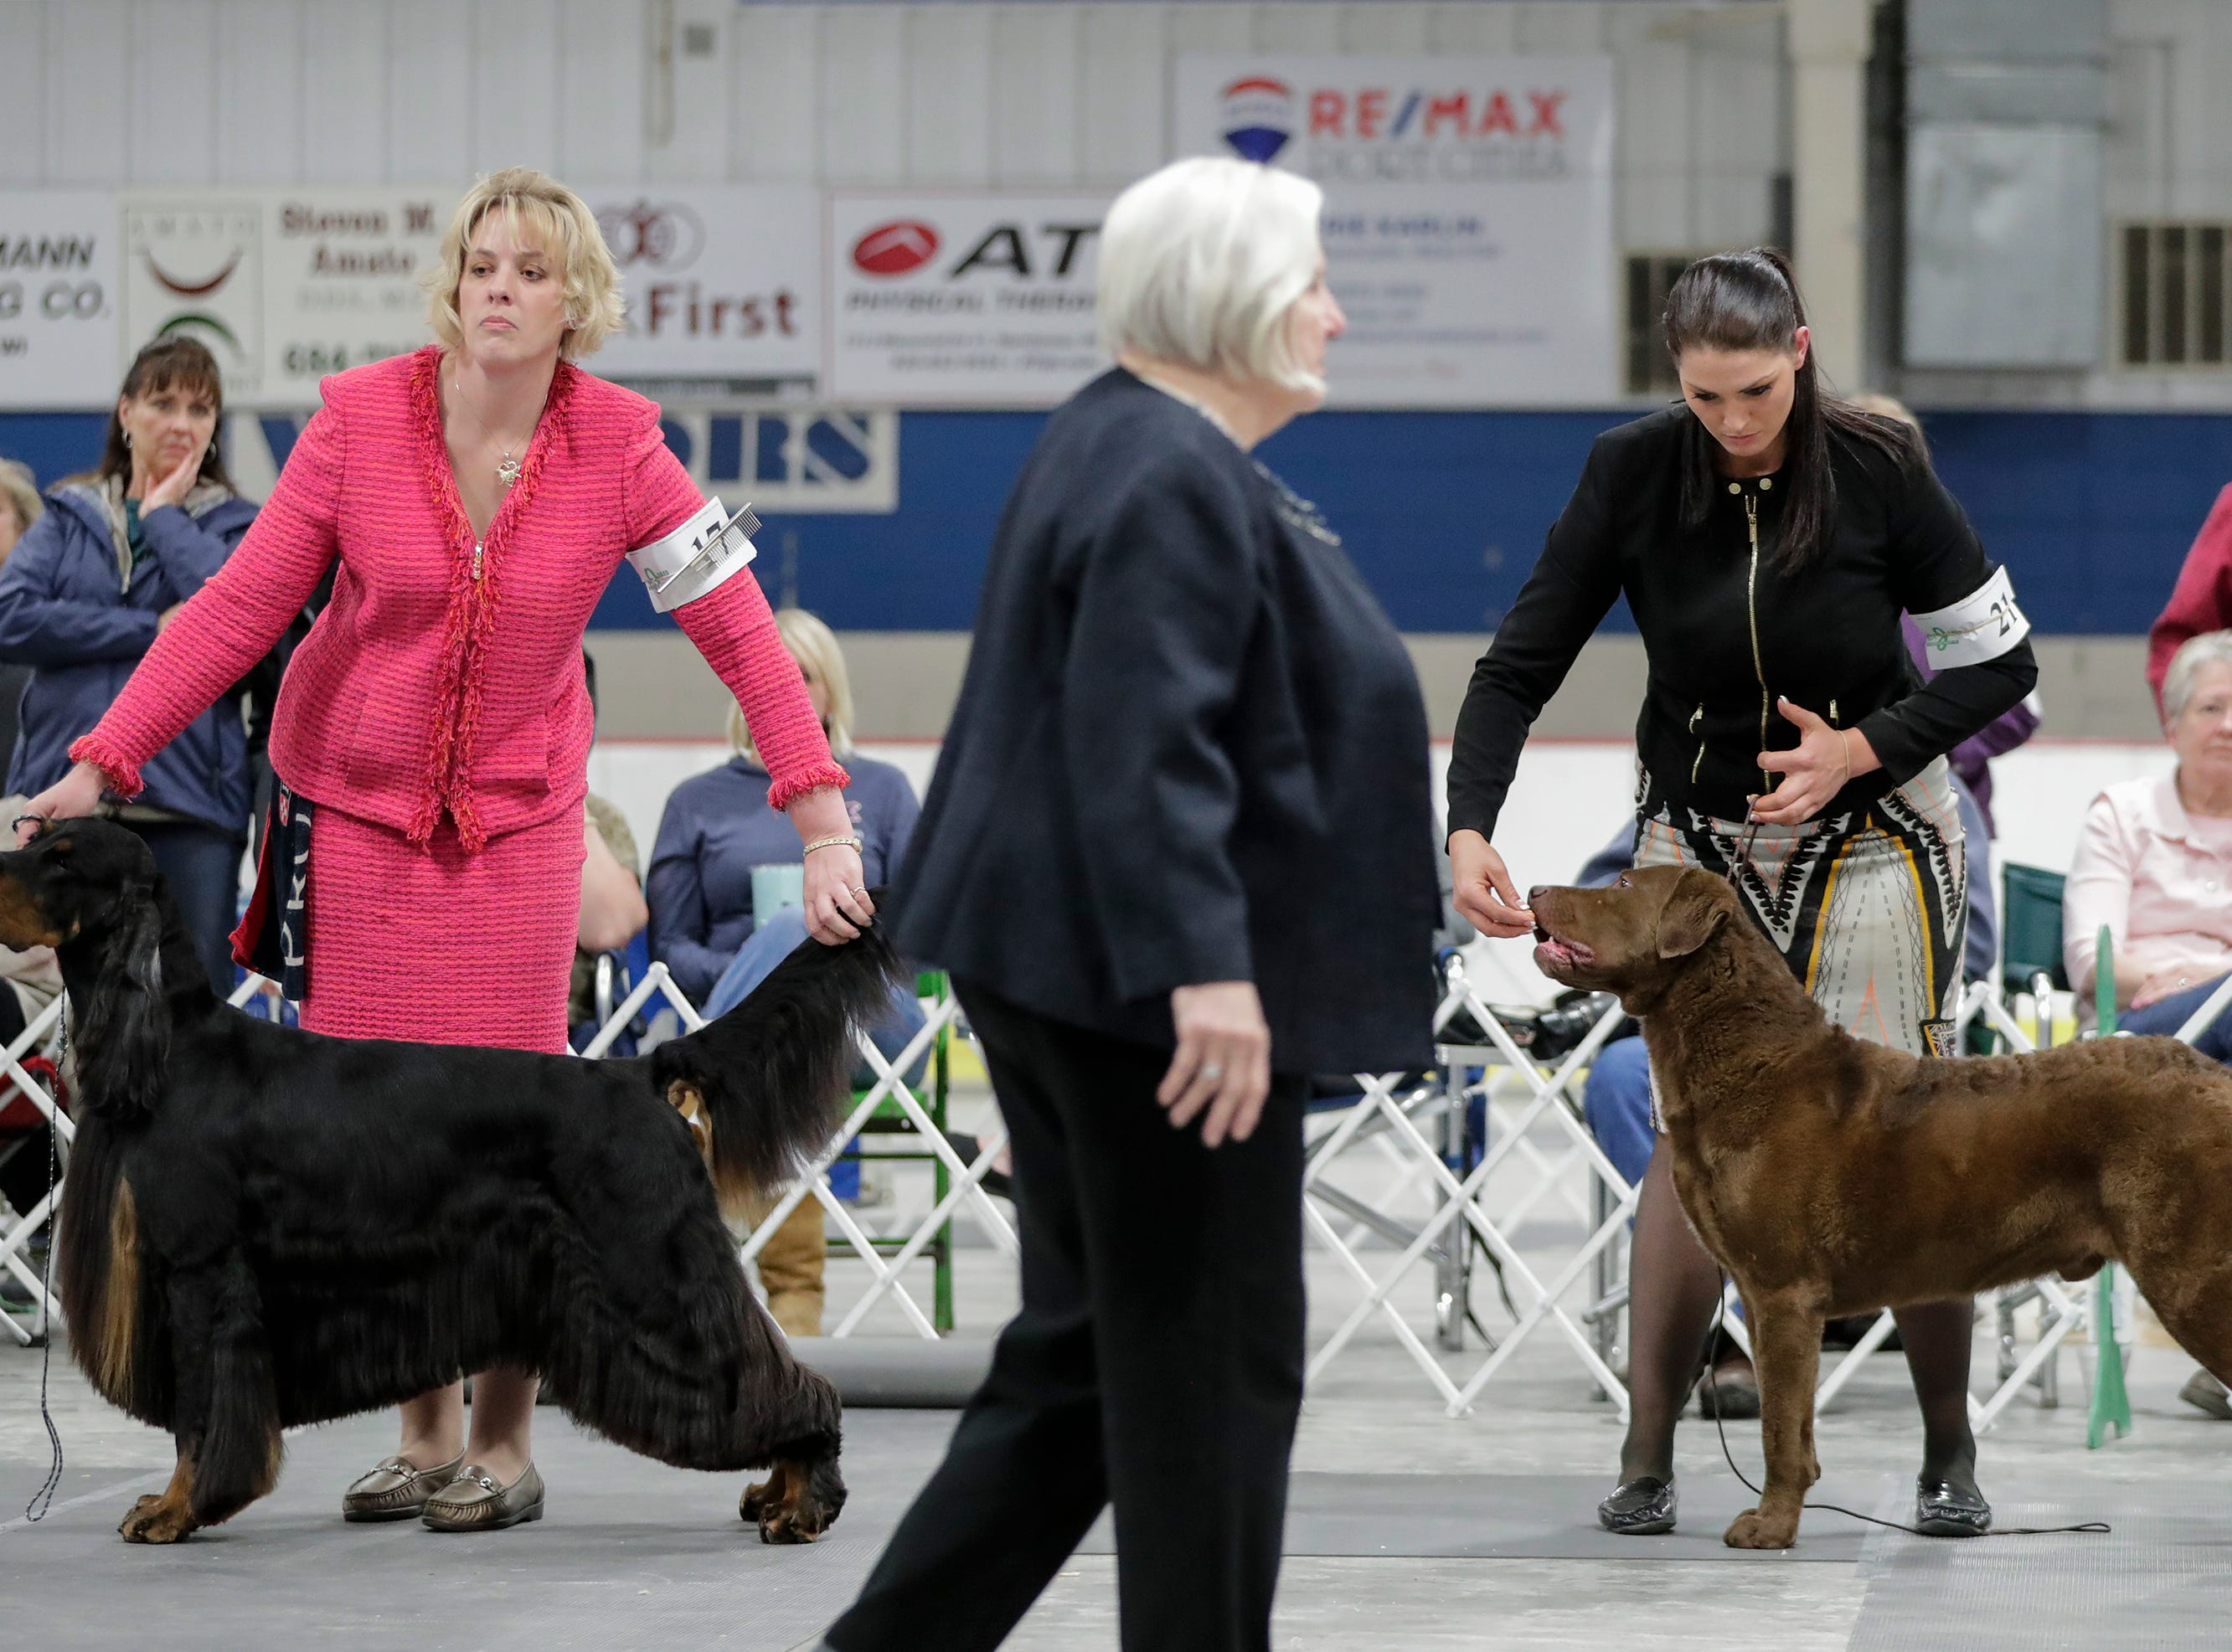 Handlers show their dogs to the judge in the sporting group show during the Northeast Wisconsin Dog Show Classic at the Manitowoc County Expo Center Thursday, March 28, 2019, in Manitowoc, Wis. Joshua Clark/USA TODAY NETWORK-Wisconsin